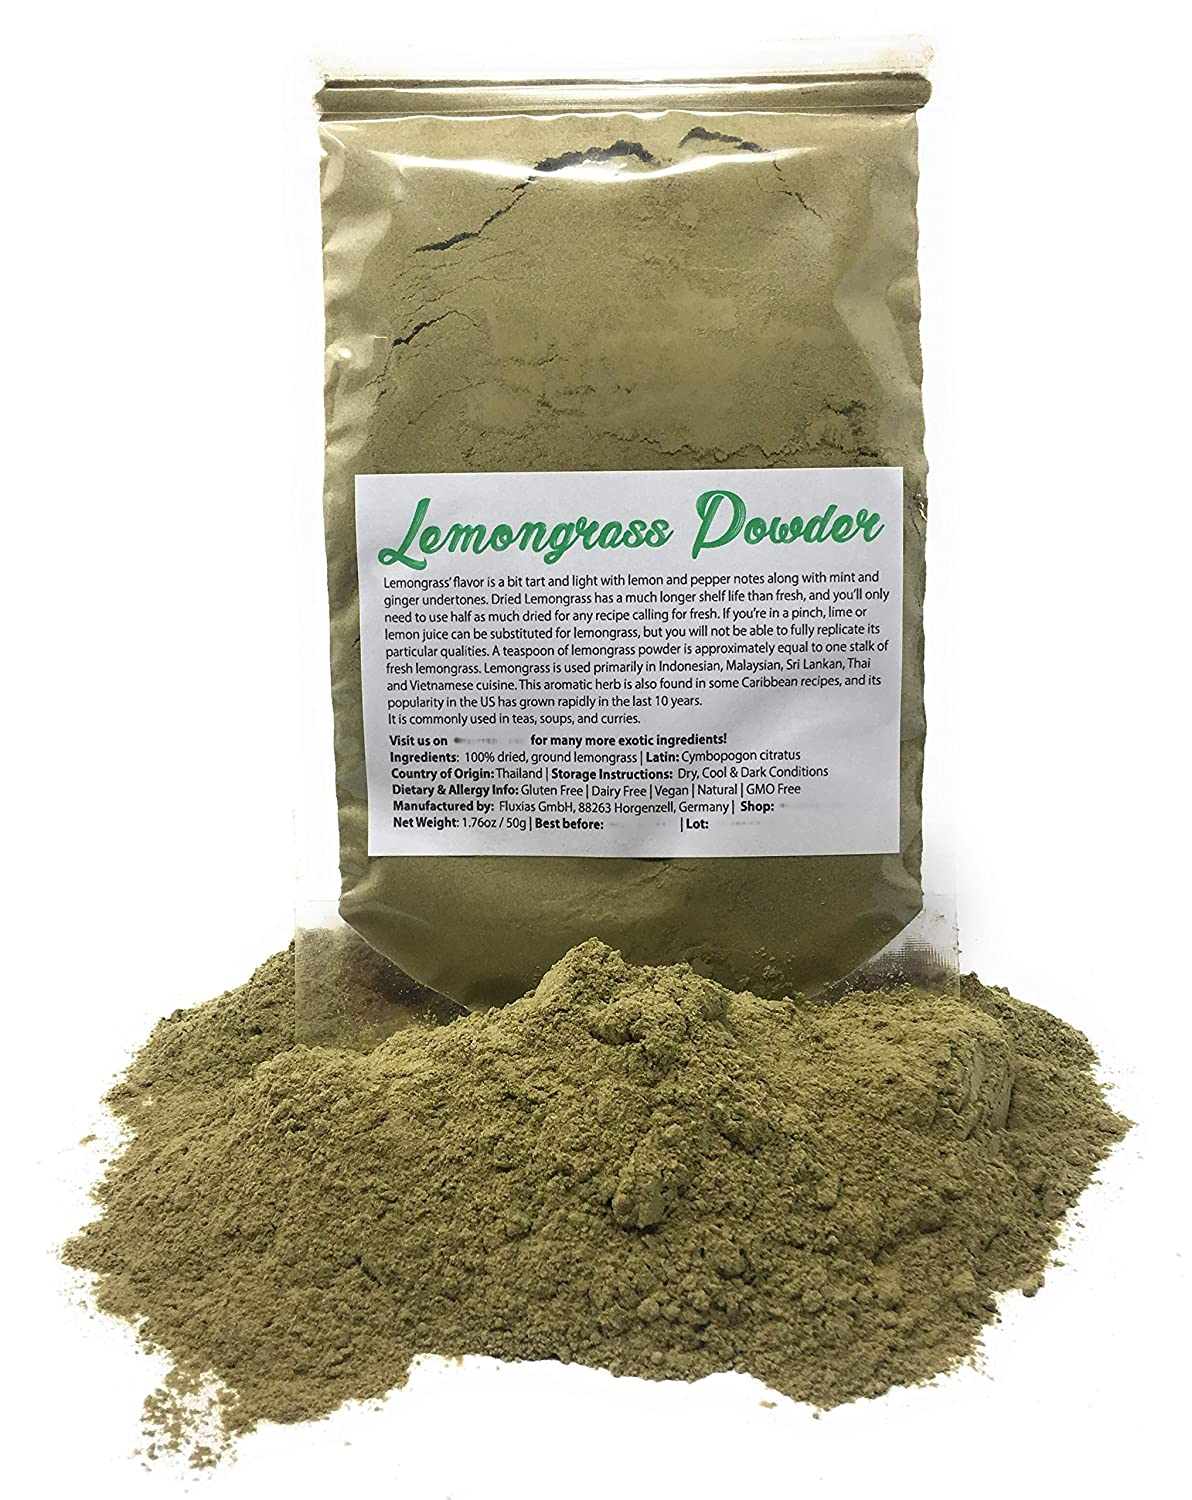 Organic Lemongrass Powder from Thailand | Made from fresh, fragrant Thai lemongrass - Super long shelf life | Net Weight: 1.76oz / 50g